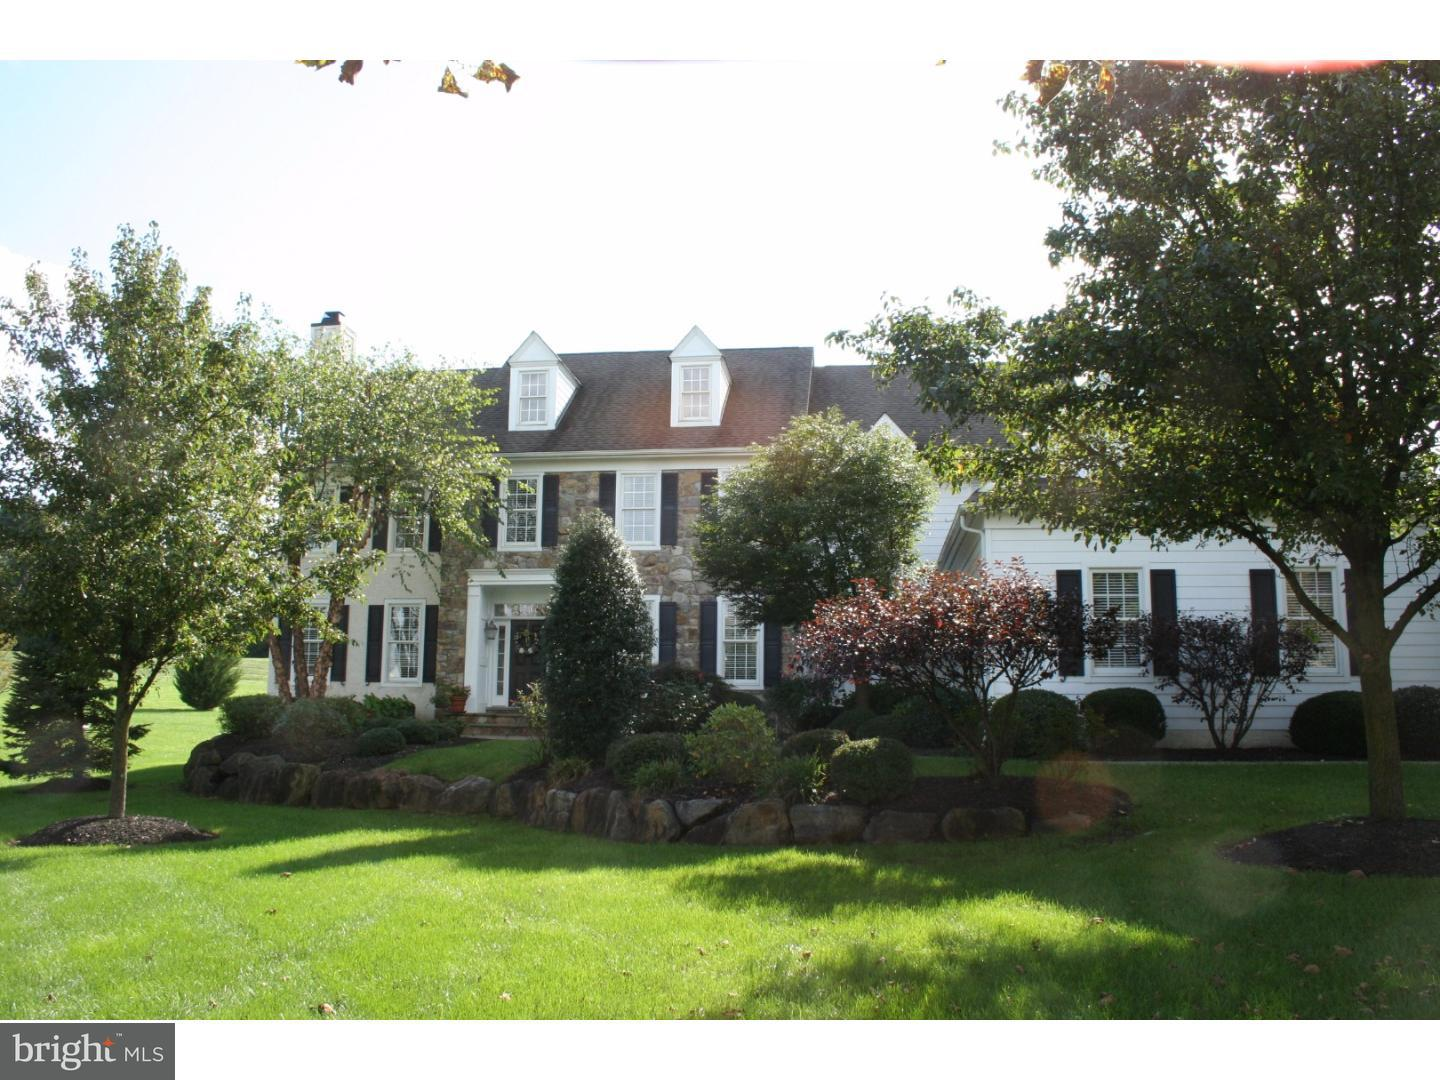 1036 BRICK HOUSE FARM LN, NEWTOWN SQUARE - Listed at $1,235,000, NEWTOWN SQUARE